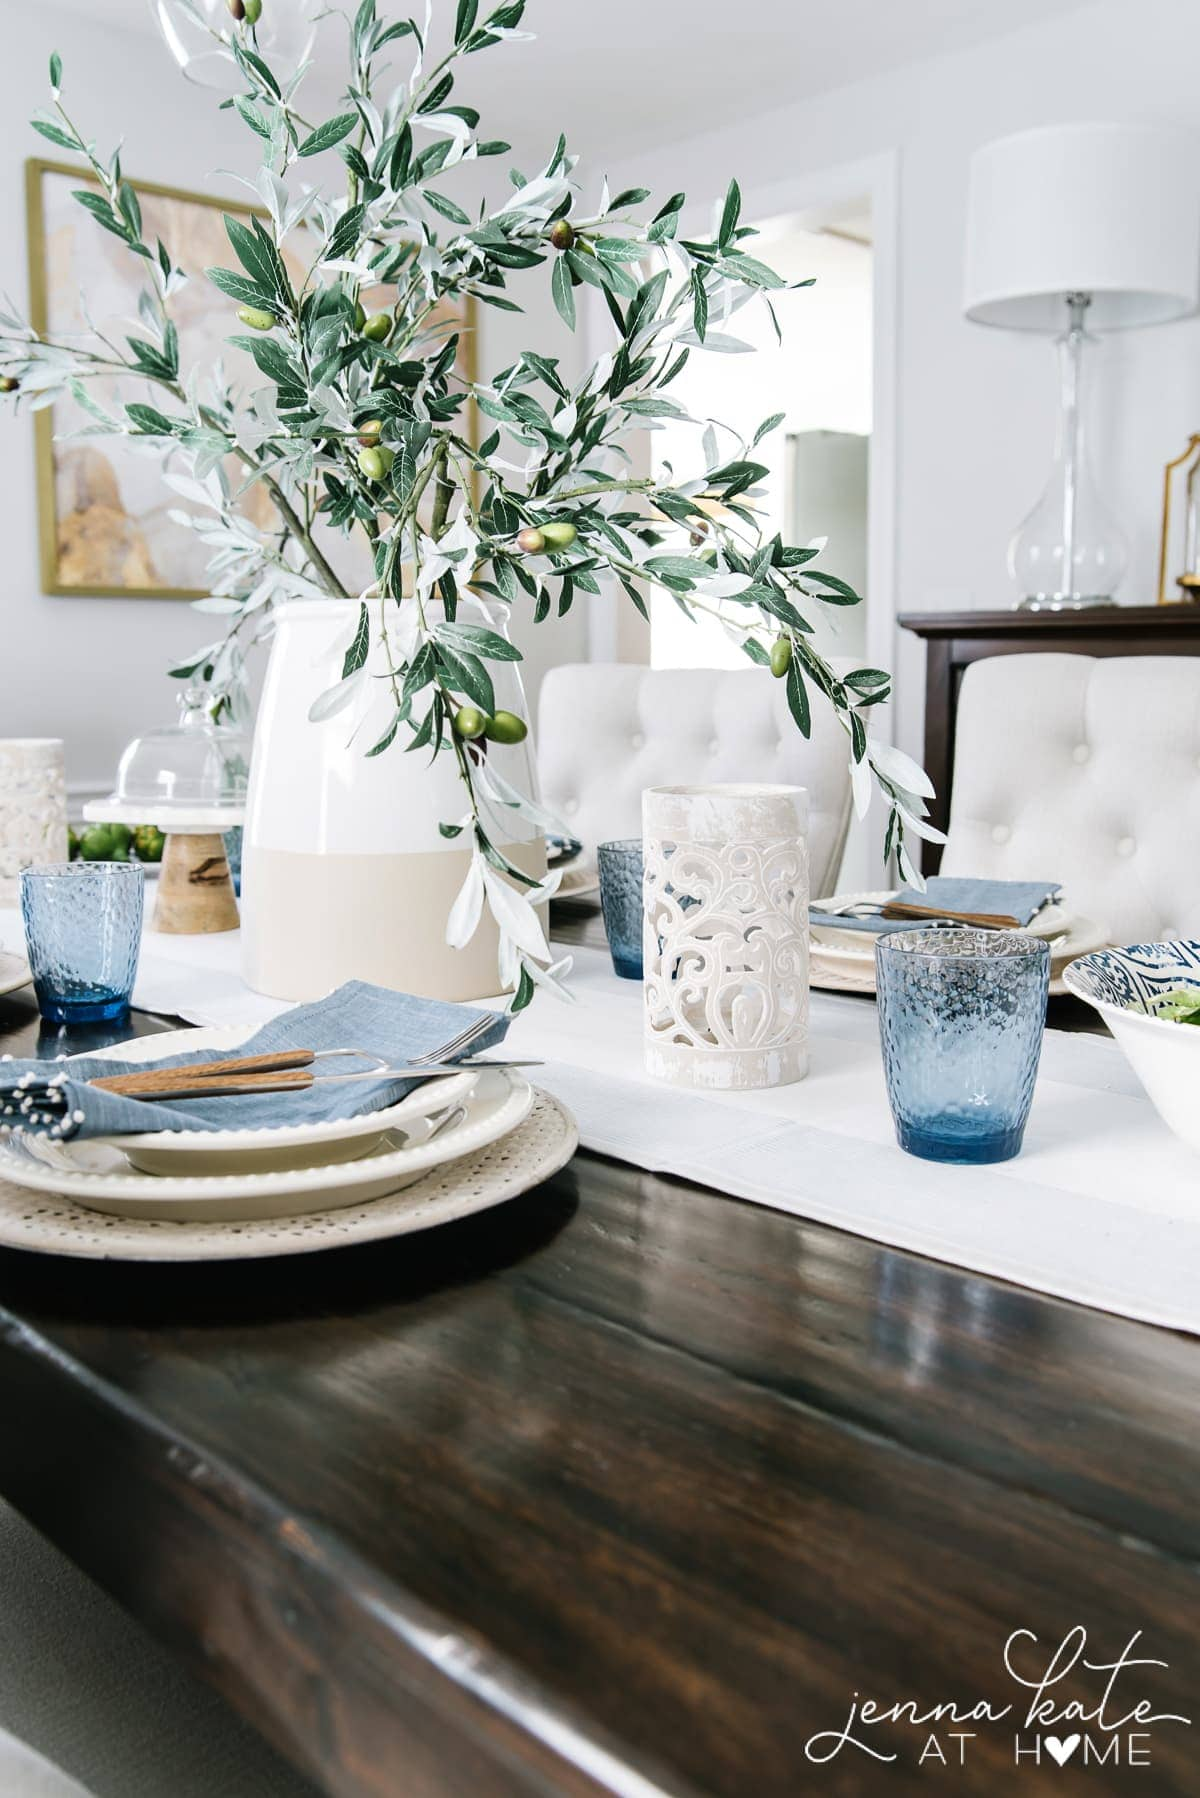 This summer tablescape has splashes of coastal blue from linen napkins and drinking glasses